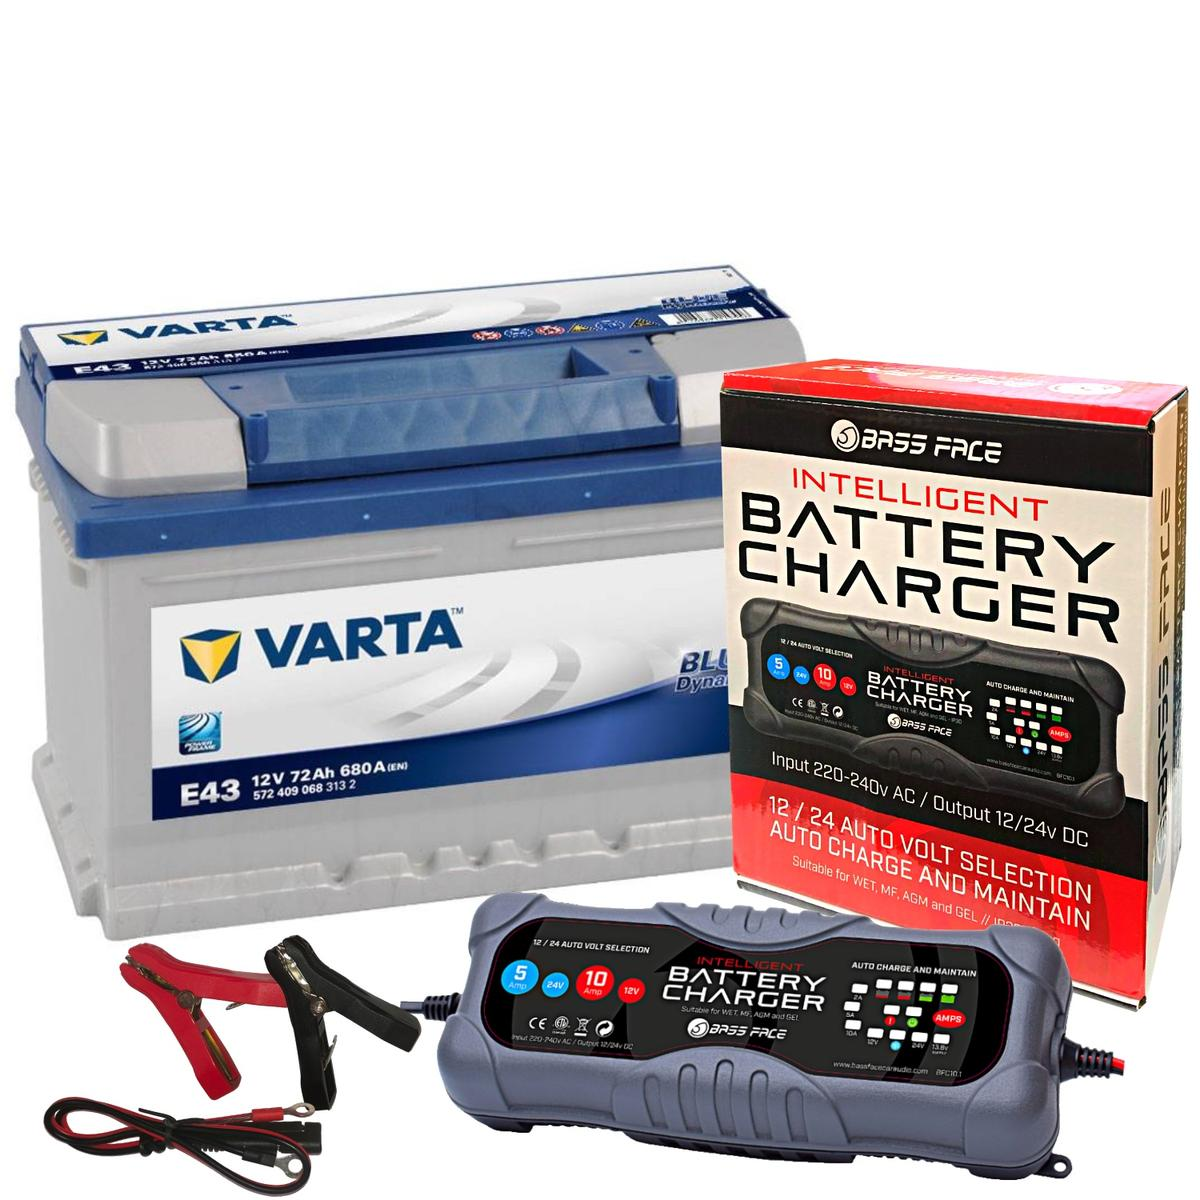 Varta E43 Vauxhall Car Battery 12v 4 Year 100 72Ah 680CCA W/ 10 Amp Charger